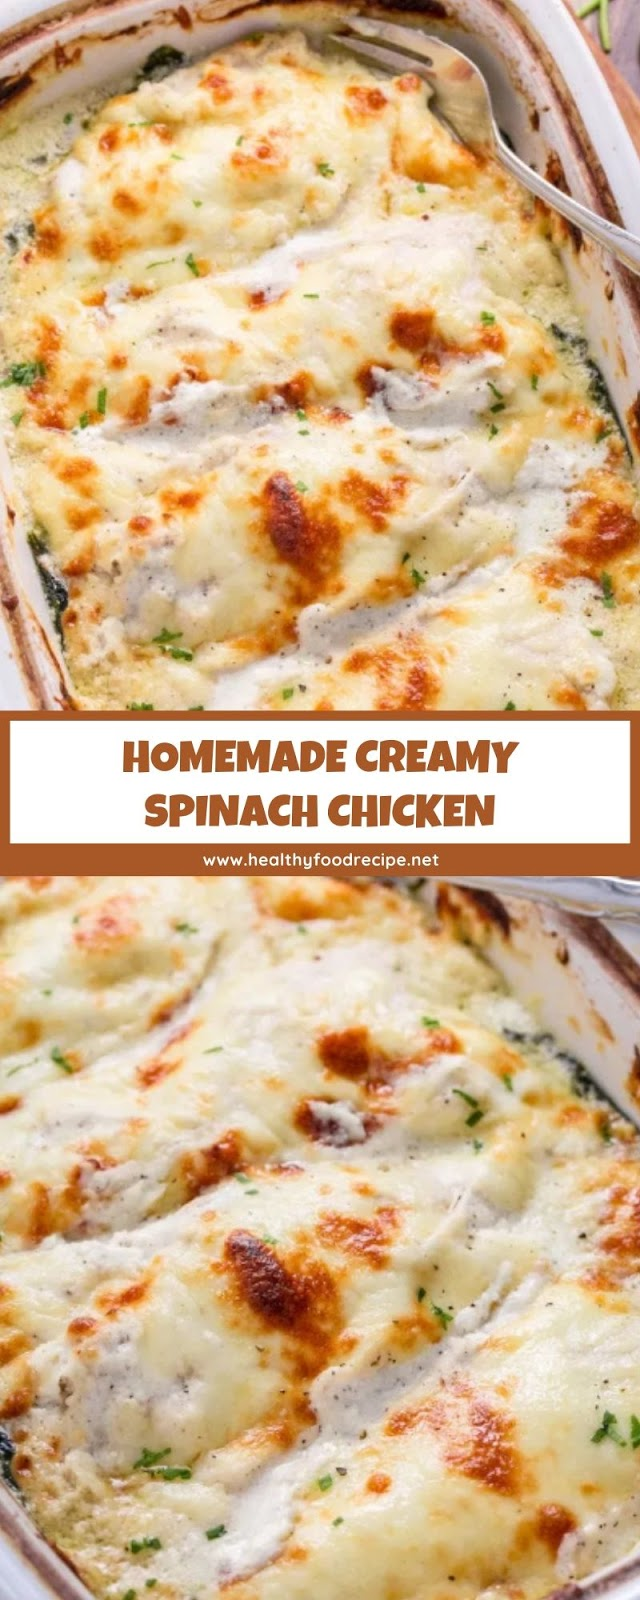 HOMEMADE CREAMY SPINACH CHICKEN